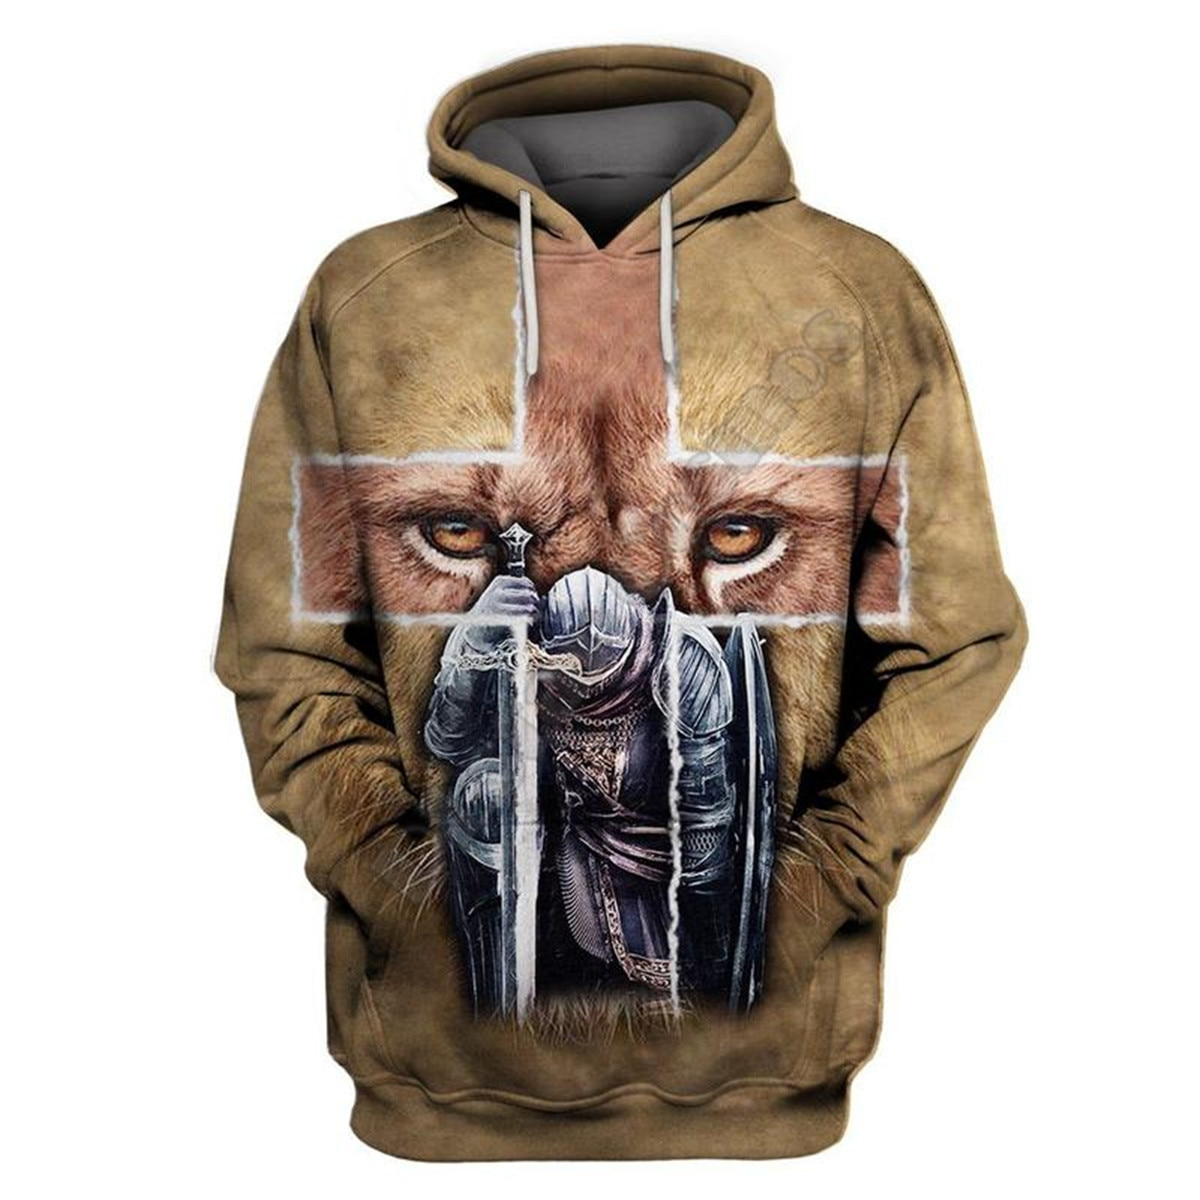 Knight Templar Armor 3D All Over Printed Hoodies Fashion Pullover Men For Women Sweatshirts Sweater Cosplay Costumes 14